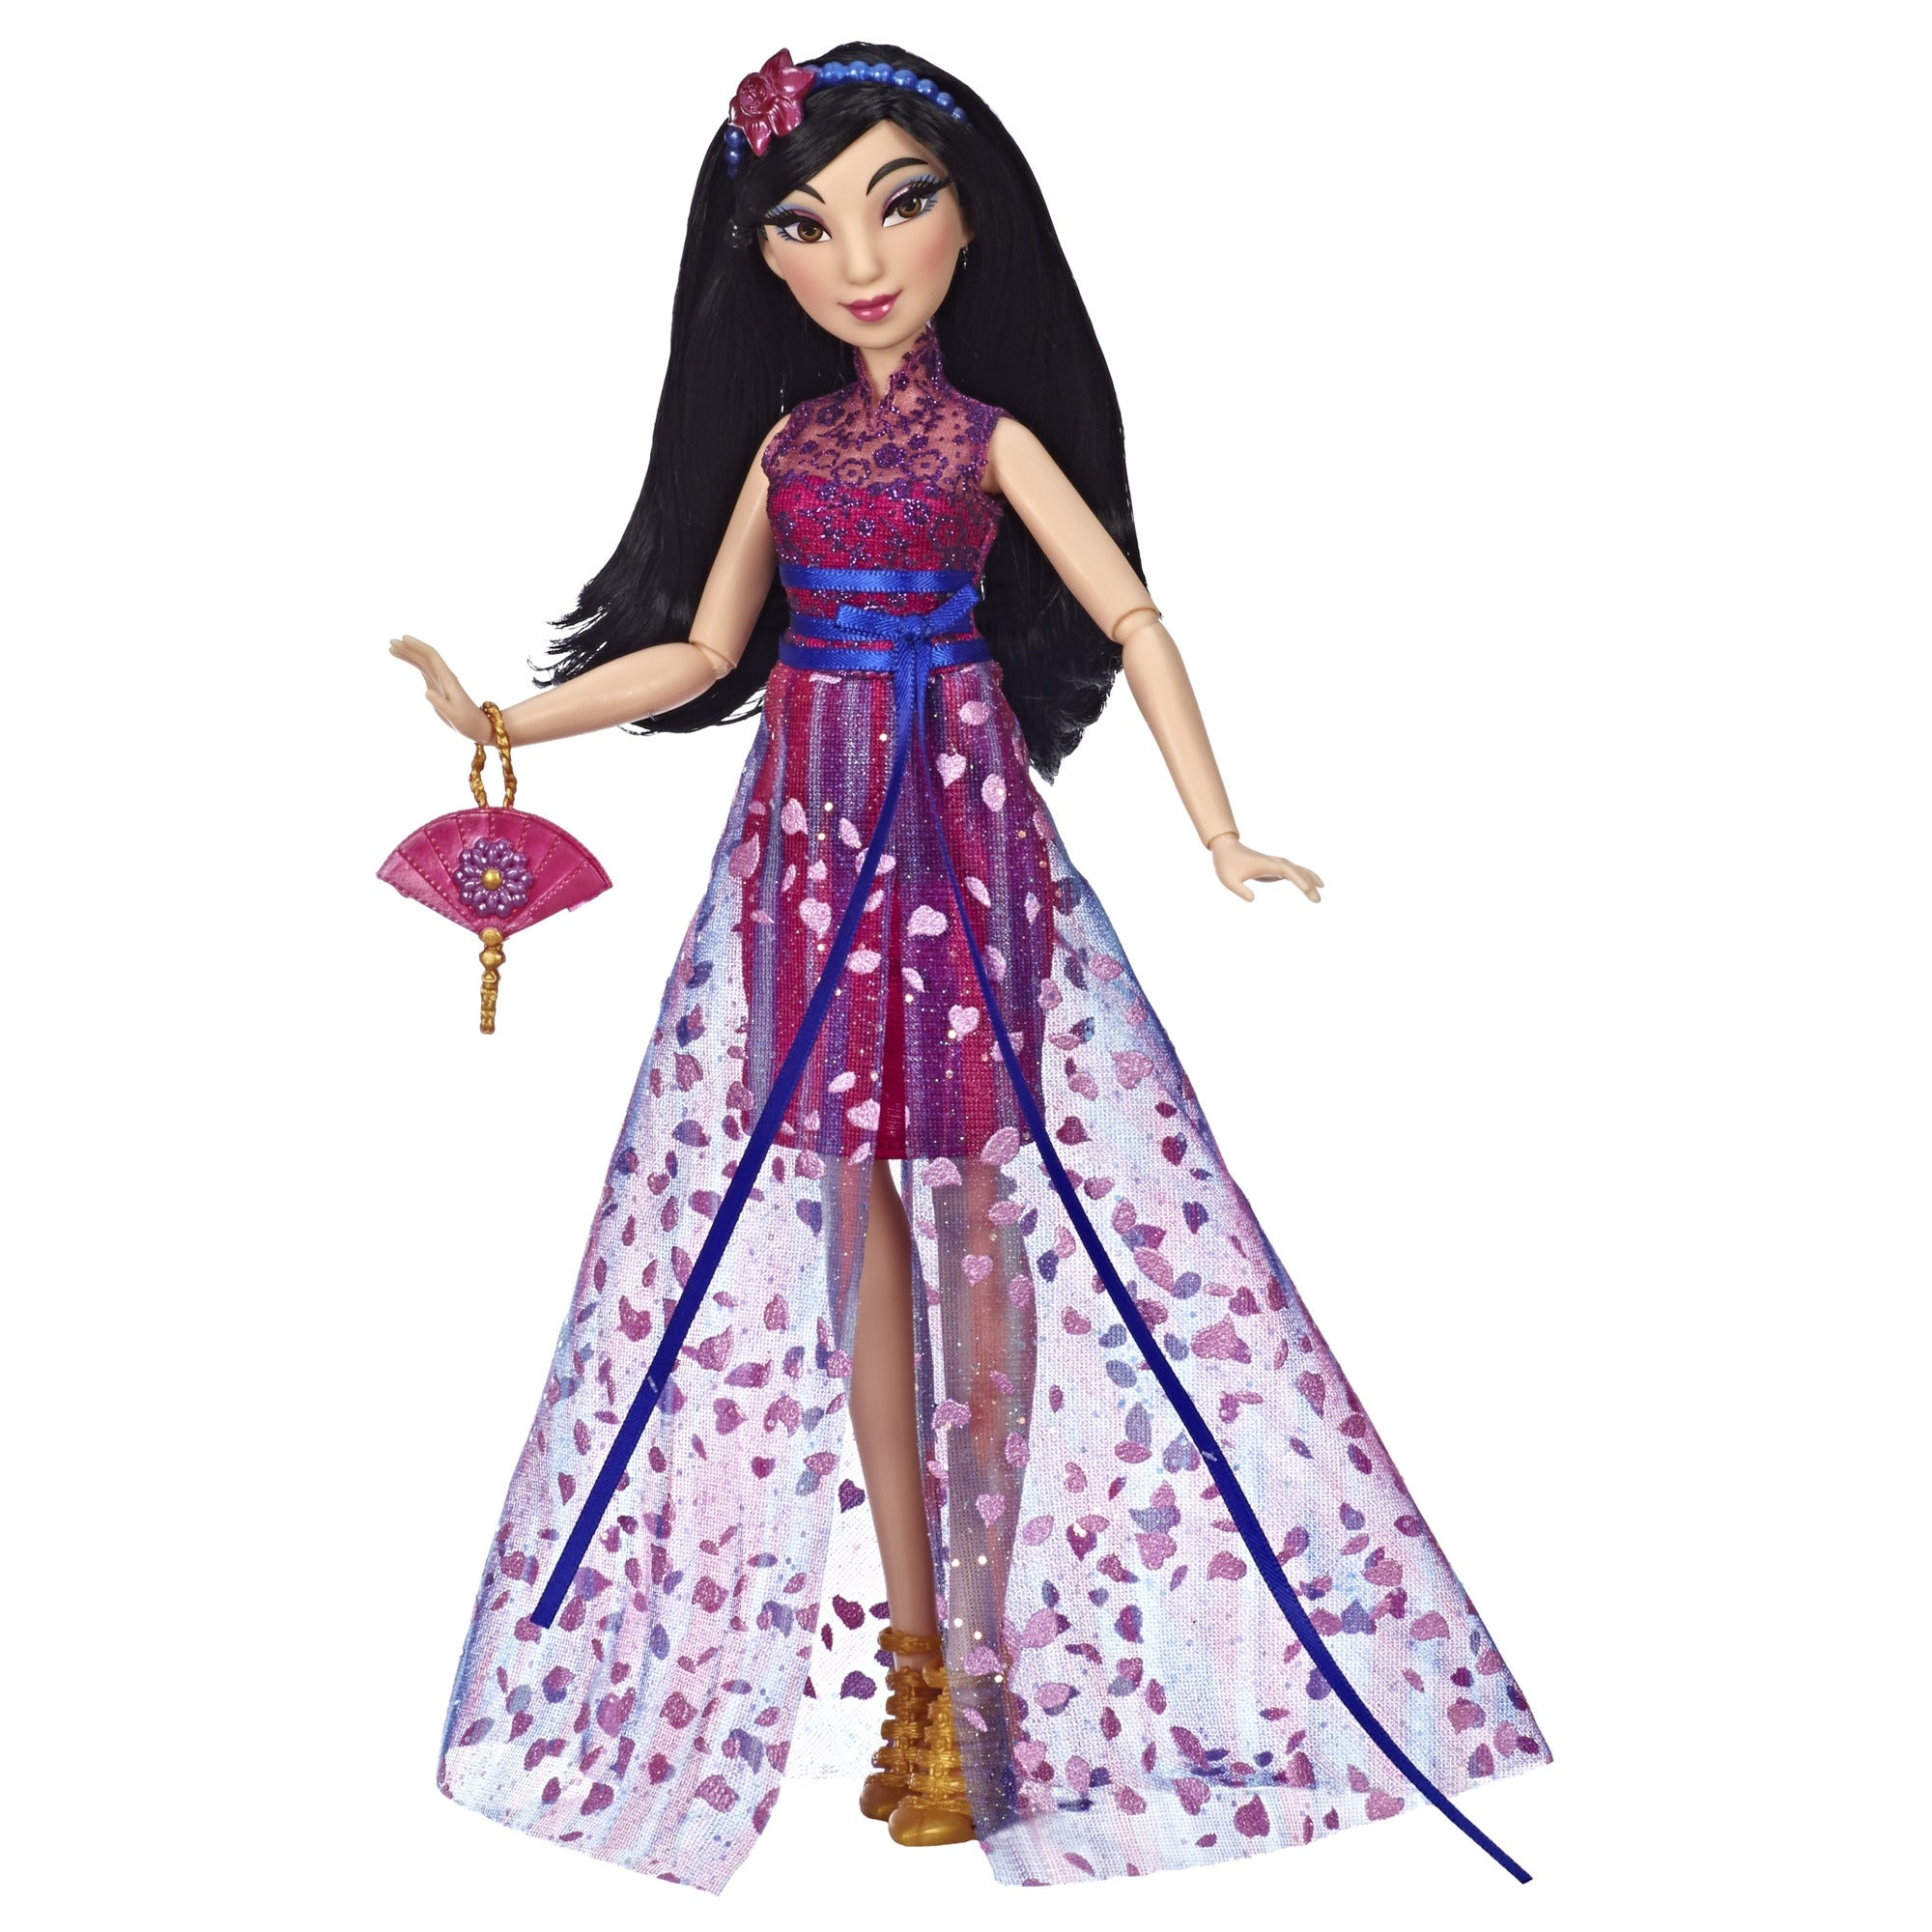 Shop Disney Princess Style Series Mulan Doll In Contemporary Style With Purse And Shoes Overstock 31668942